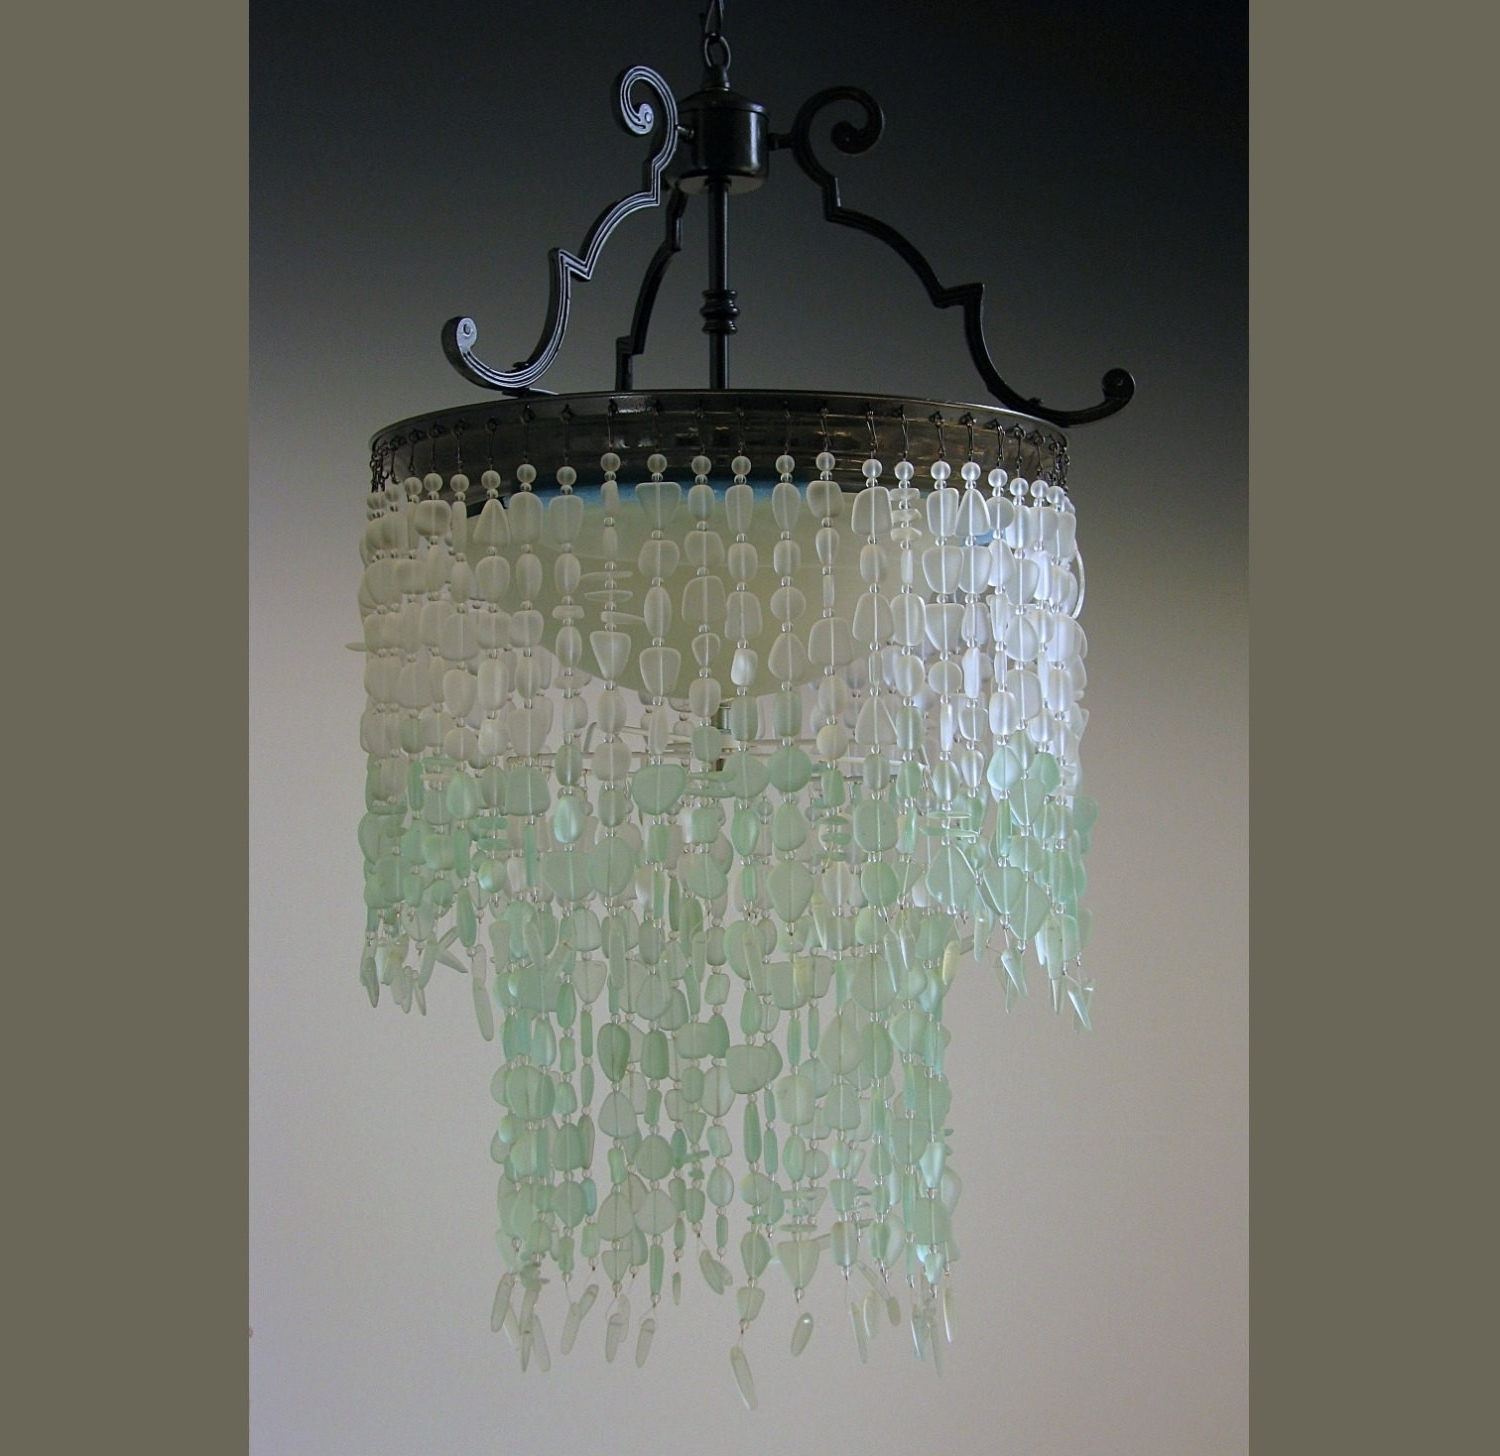 Turquoise Blue Glass Chandeliers In Popular Chandeliers : Sea Glass Chandelier Awesome Chandelier Turquoise Blue (View 12 of 15)